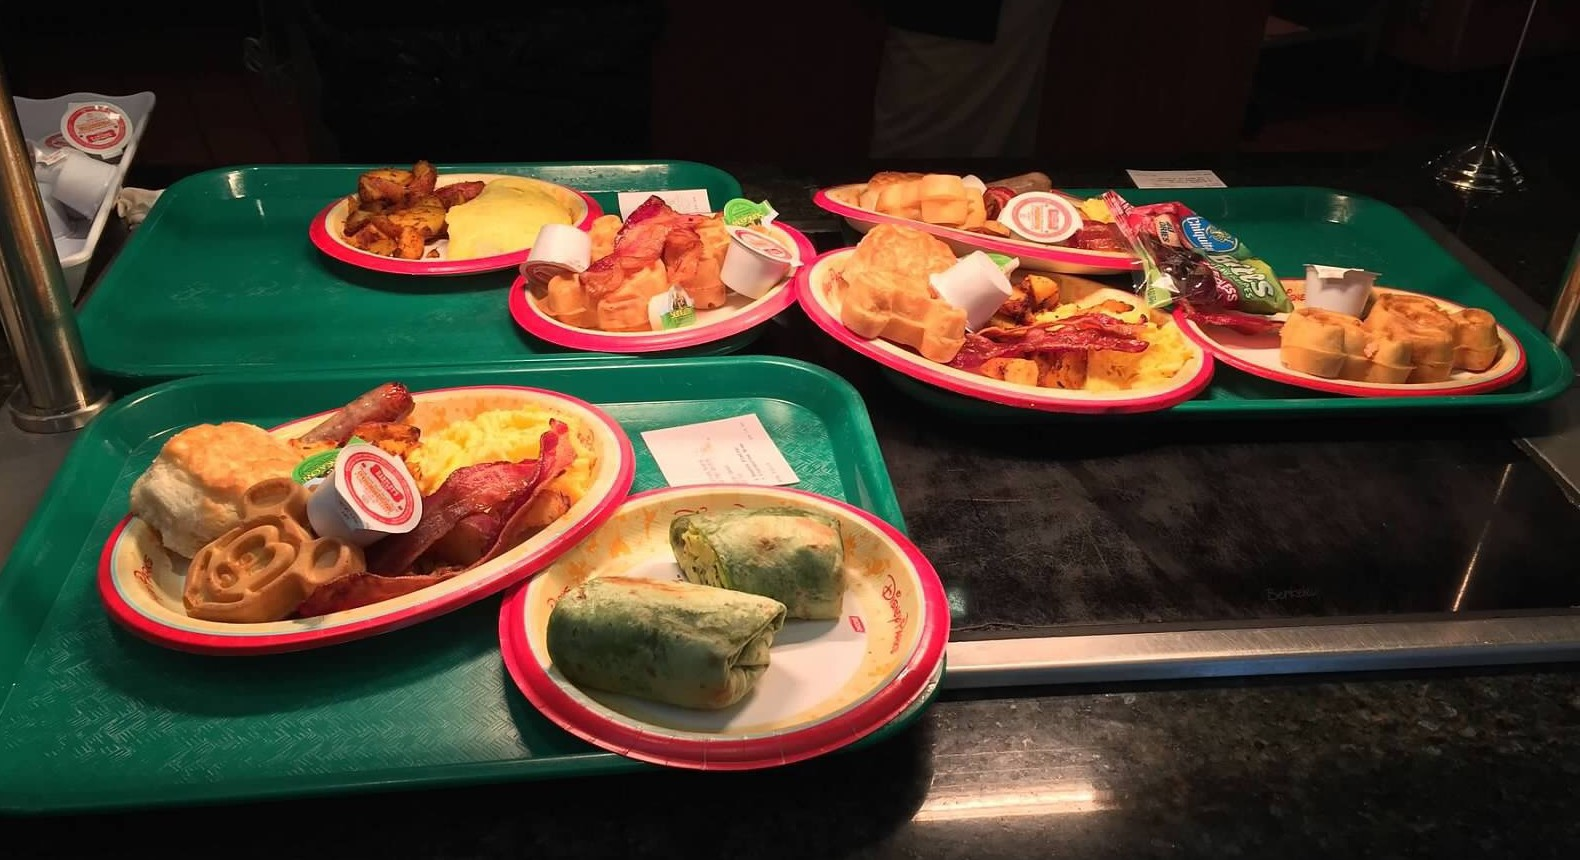 The Disney Dining Plan: What Works For Us